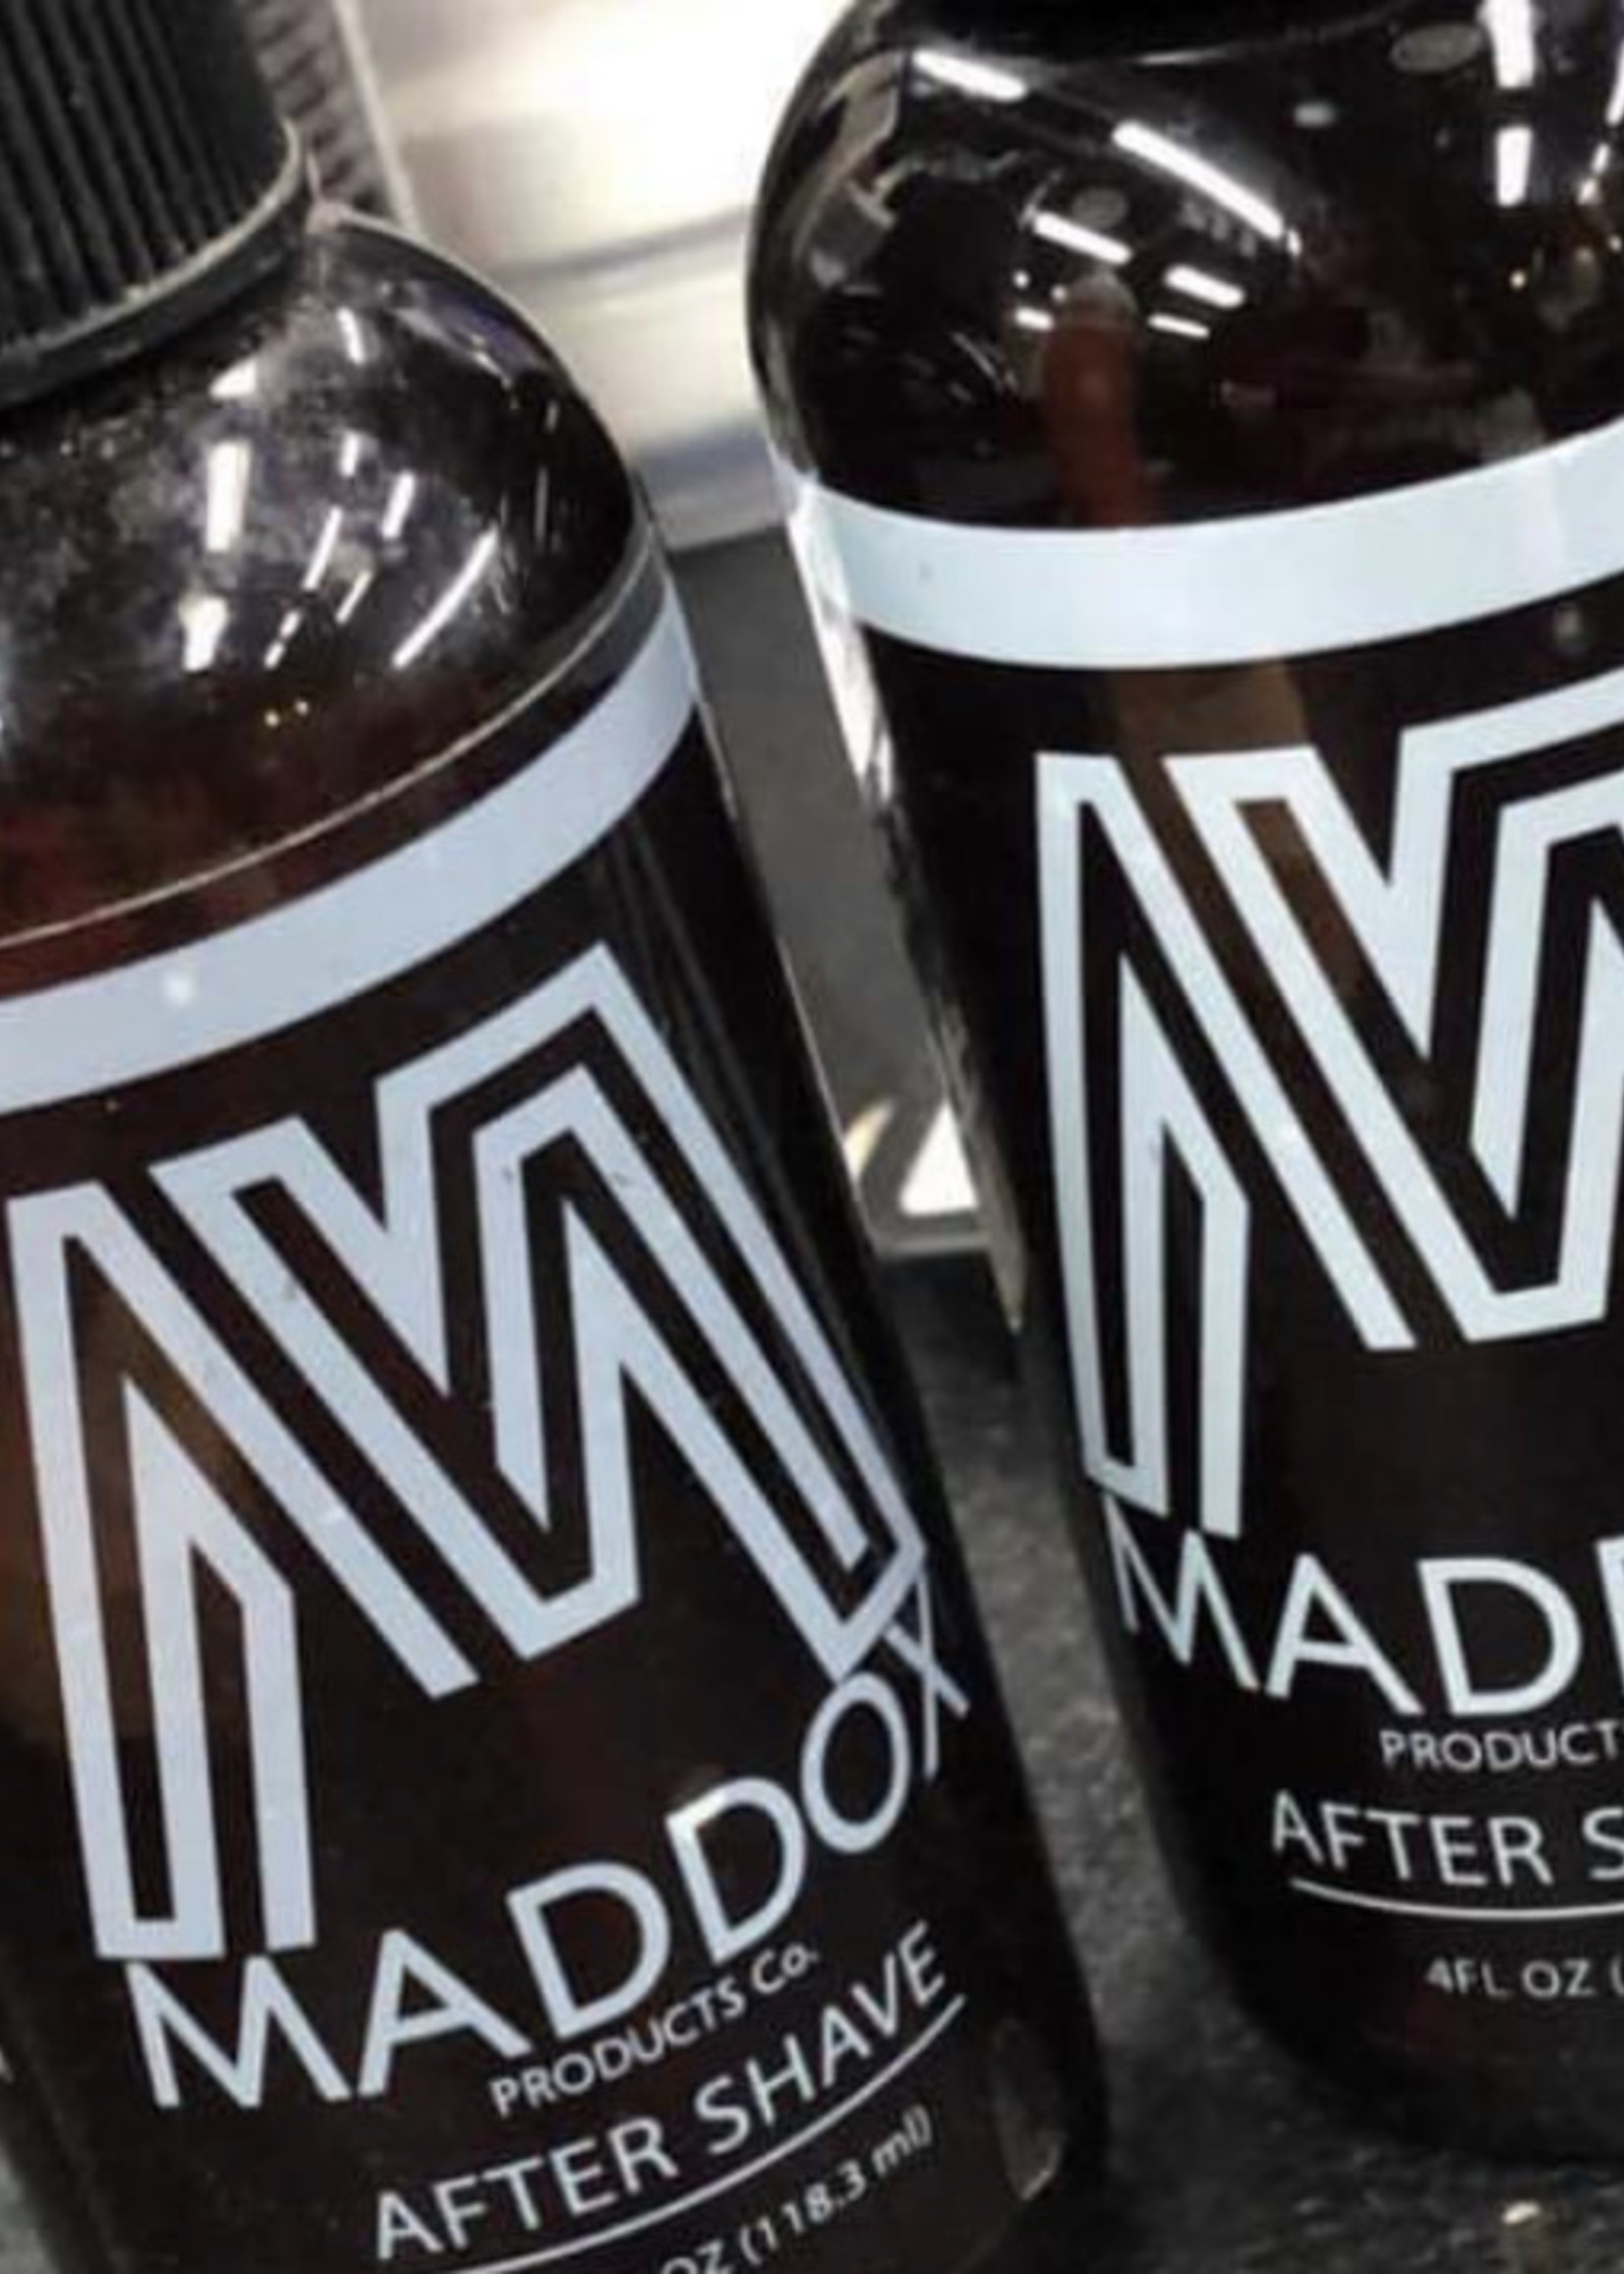 Maddox Aftershave